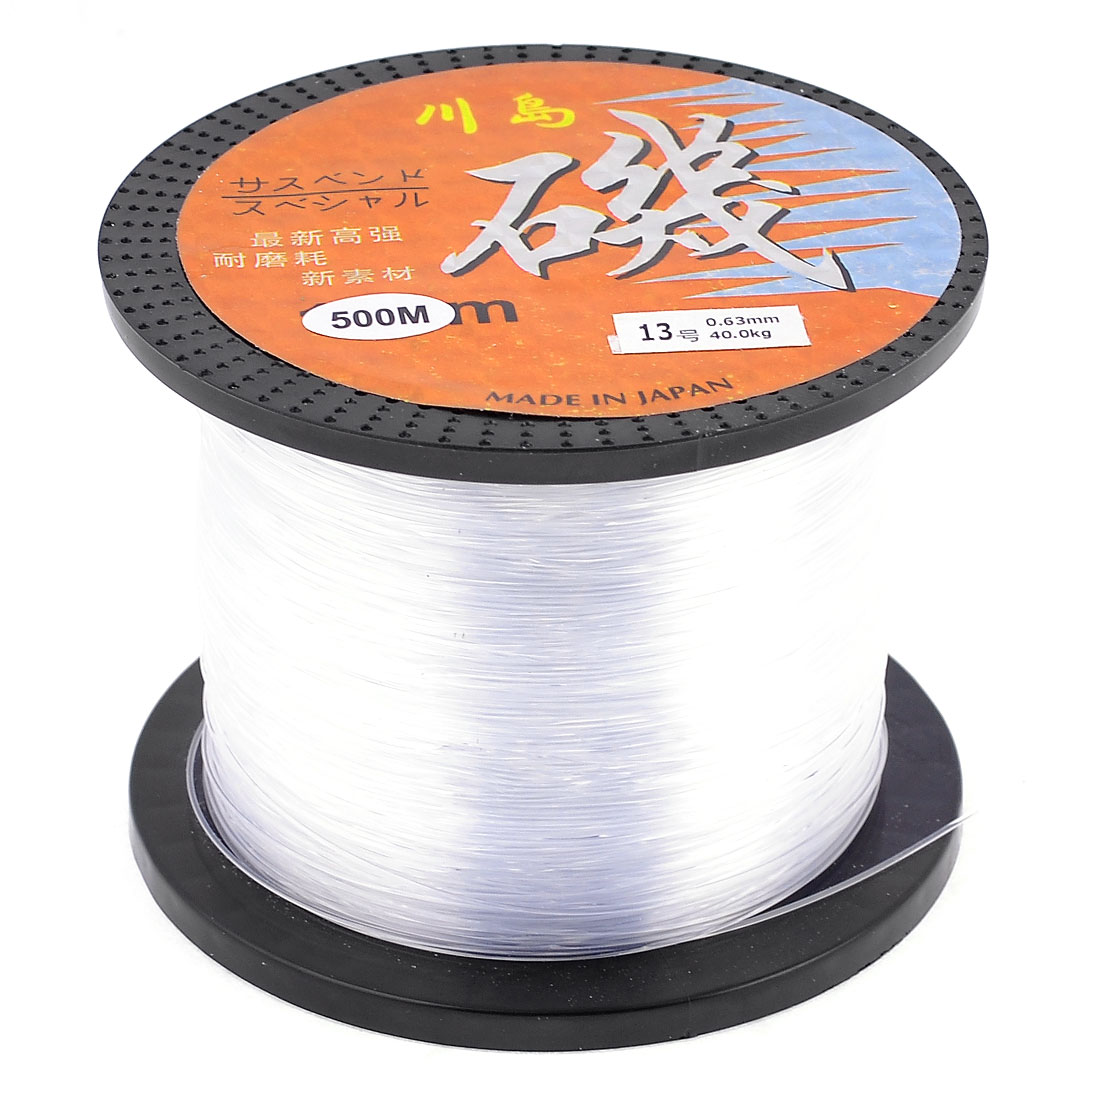 White Nylon Thread 0.63mm Diameter 40Kg Fishing Line Spool 500M